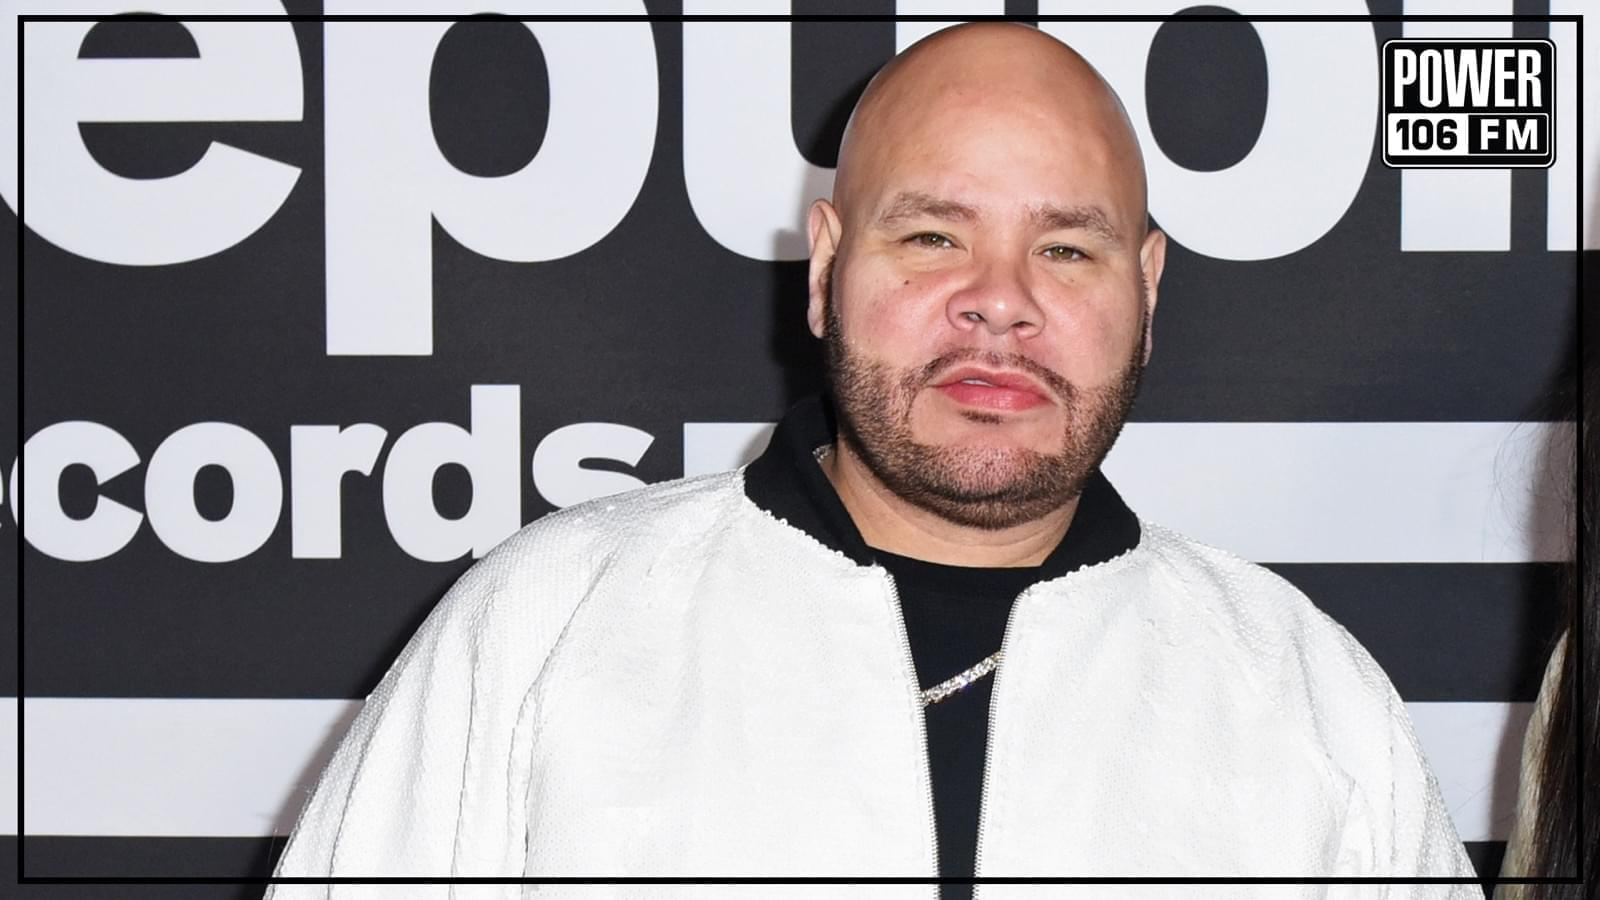 Daily Dose: DJ Felli Fel Discusses Fat Joe Calling Tekashi 69 A Snitch [WATCH]